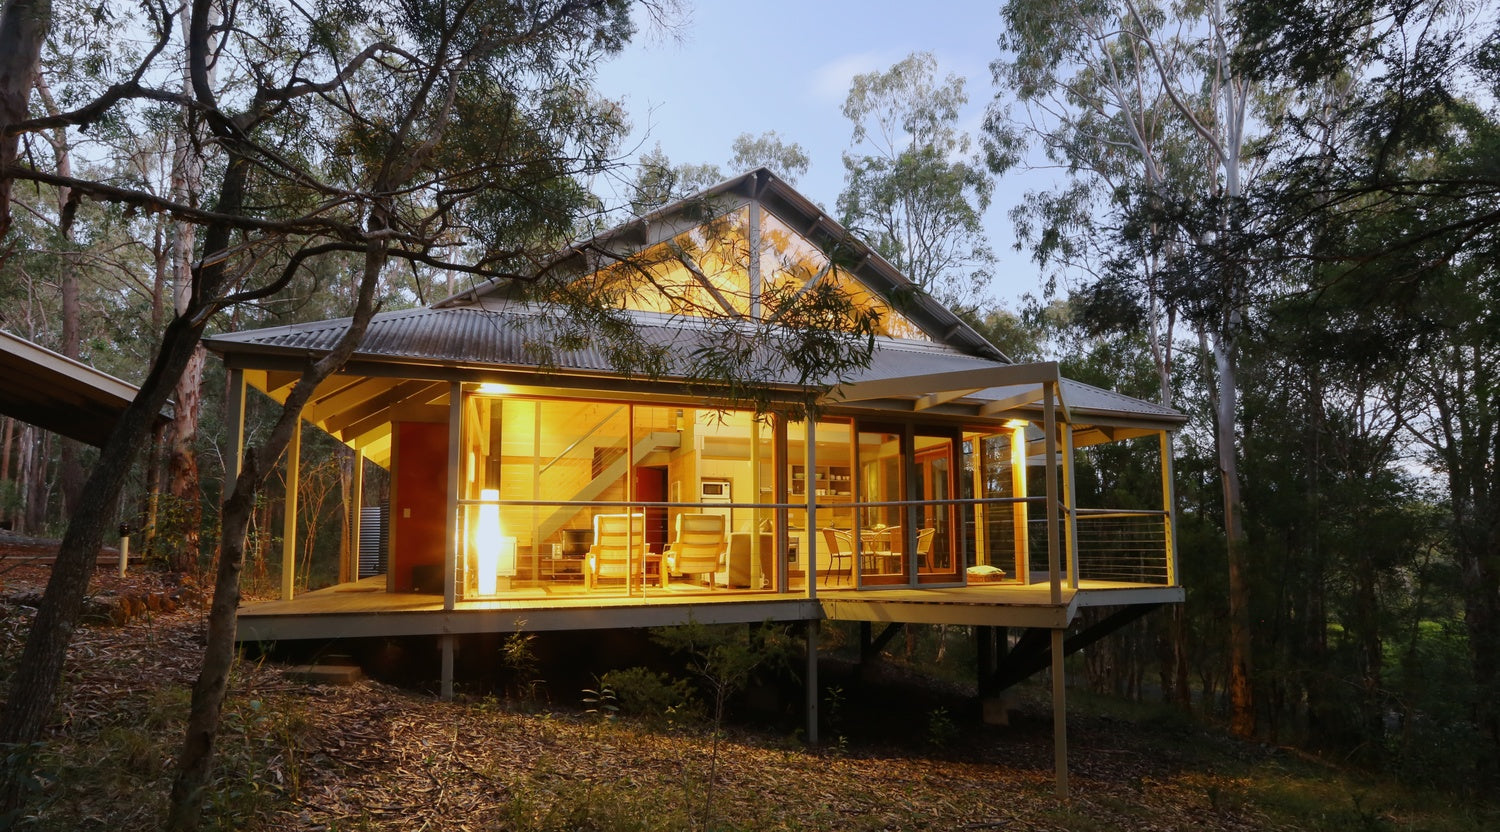 Bombah Point Eco Cottages, Myall Lakes National Park